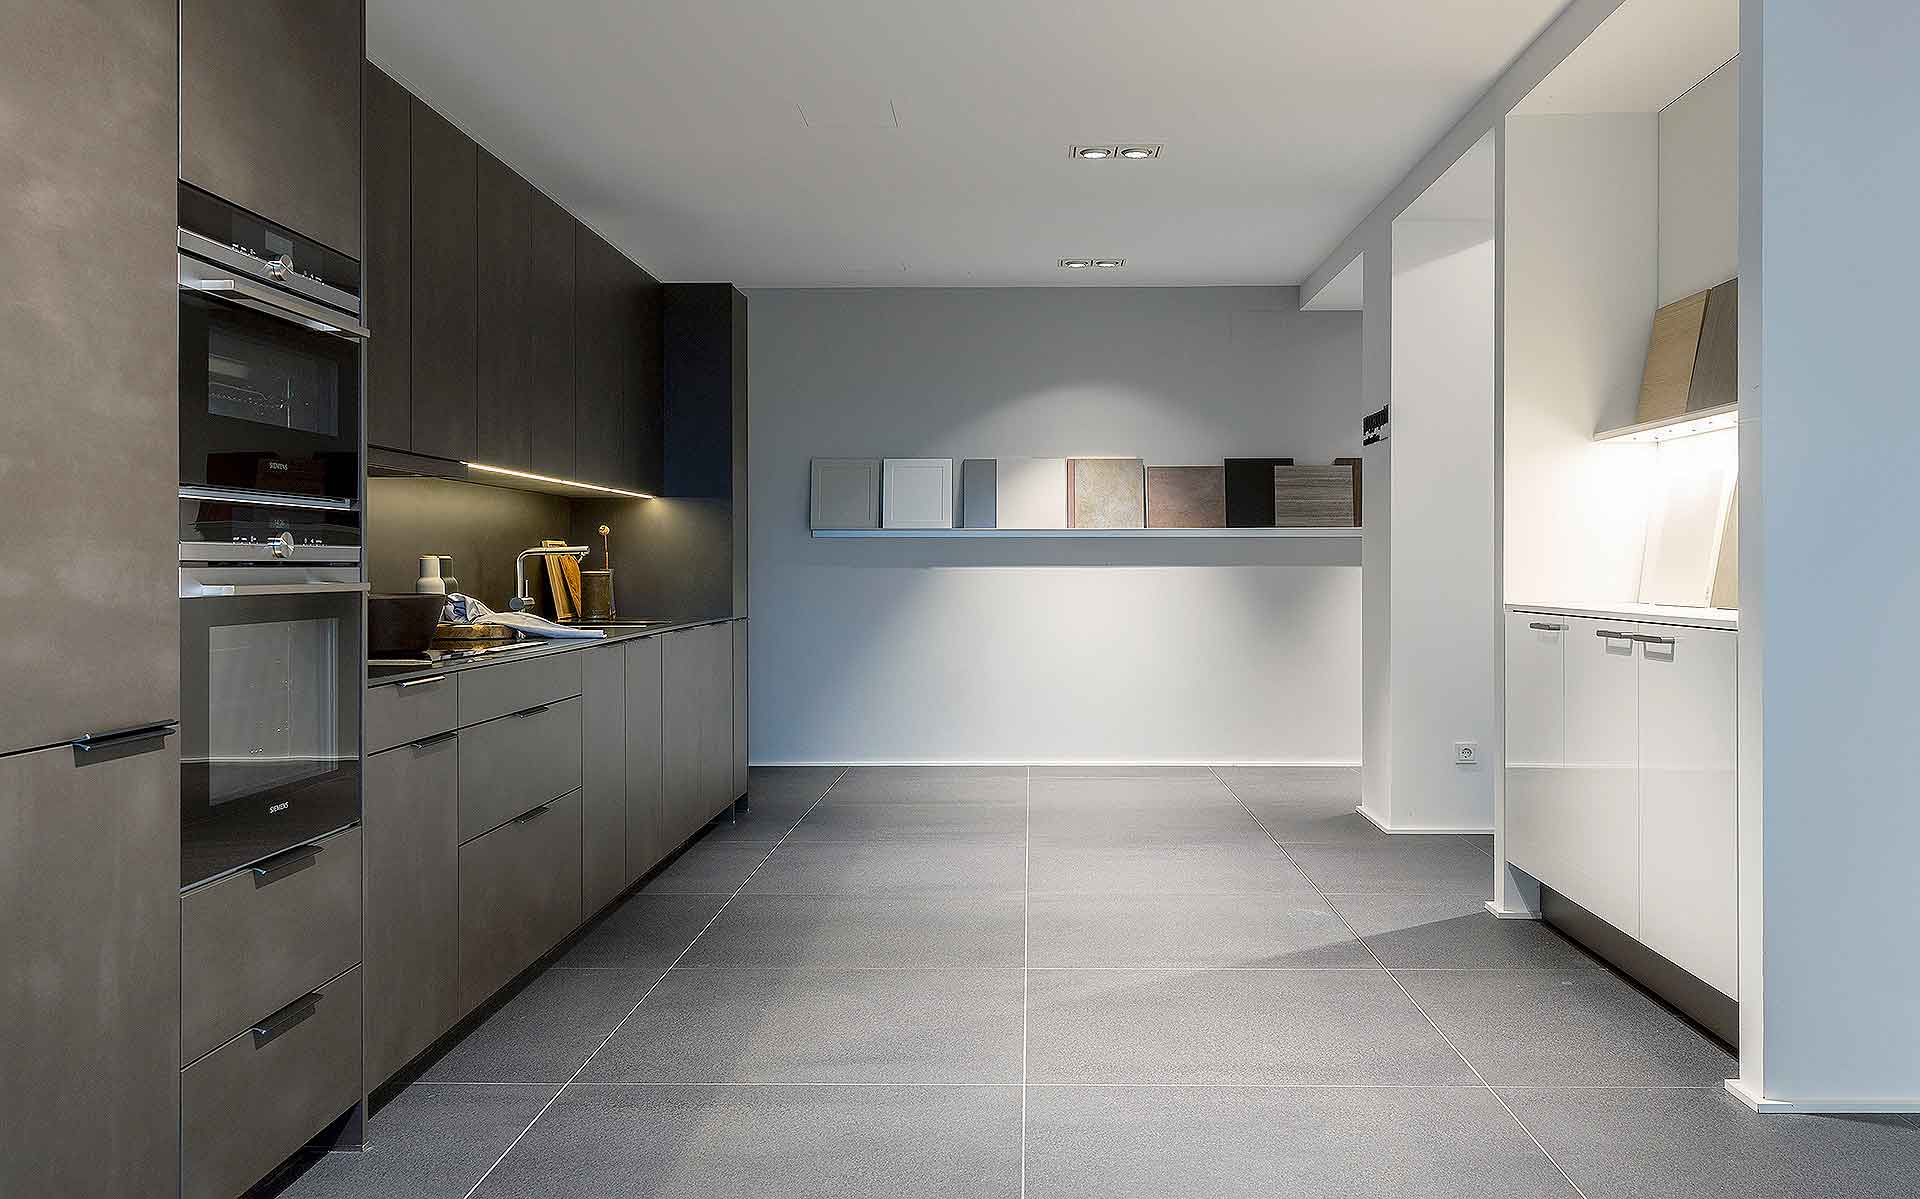 Ditail-ceramica-core-quartz-Mosa